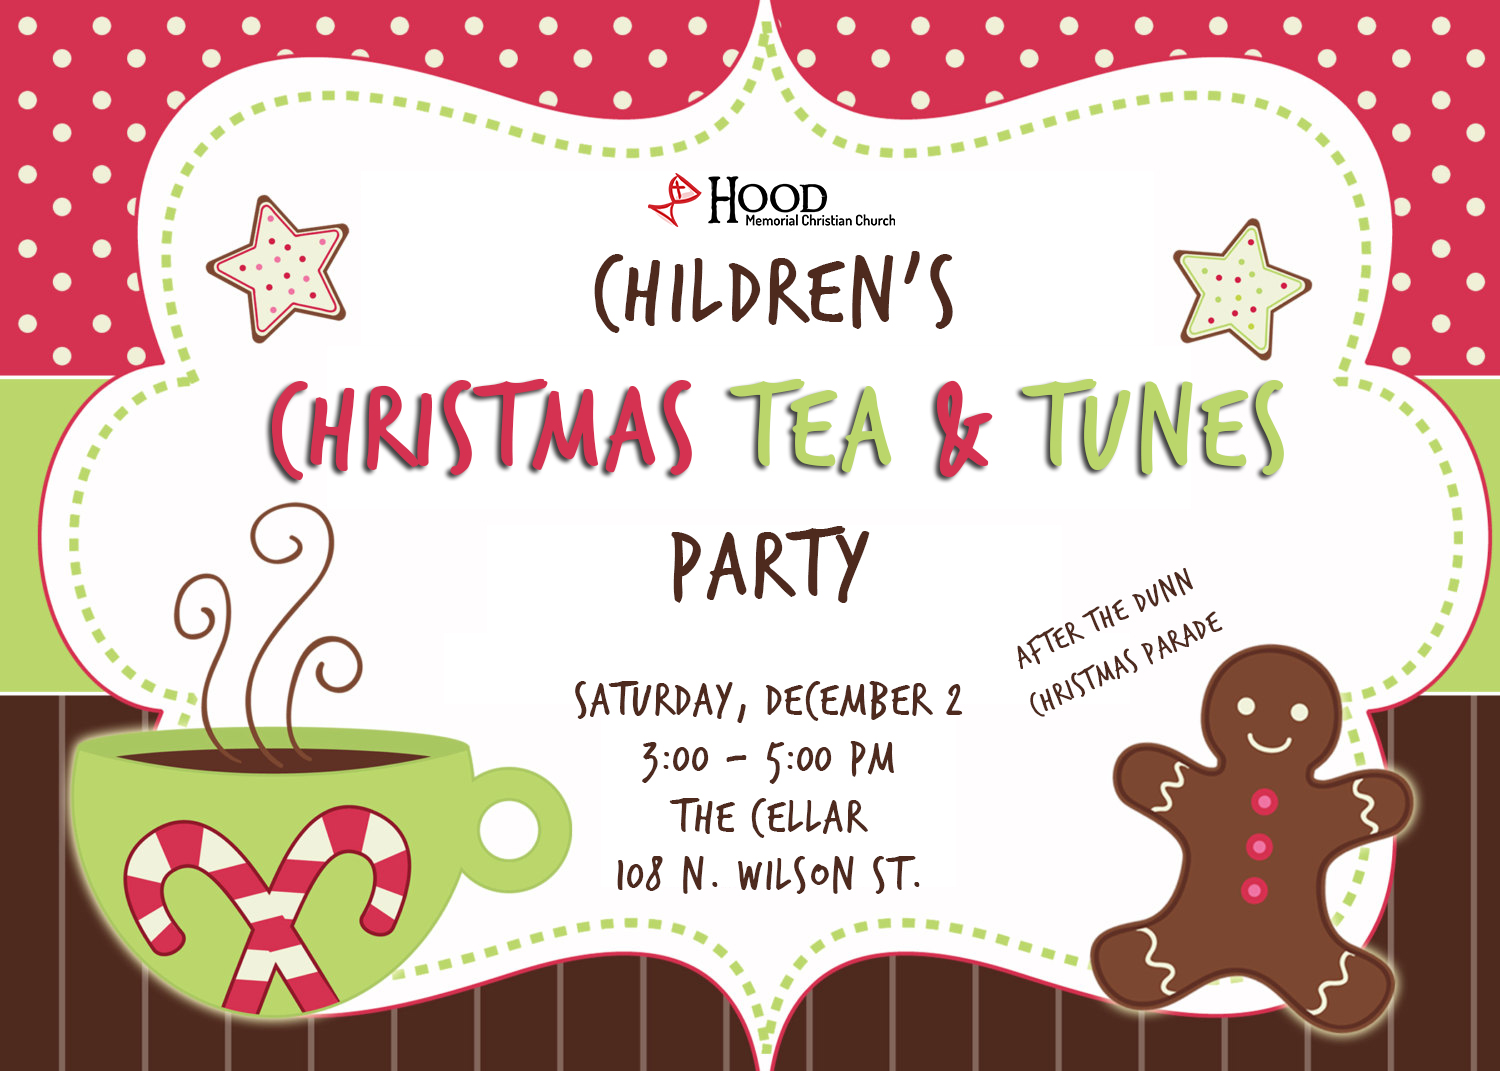 Children's Christmas Tea & Tunes Party